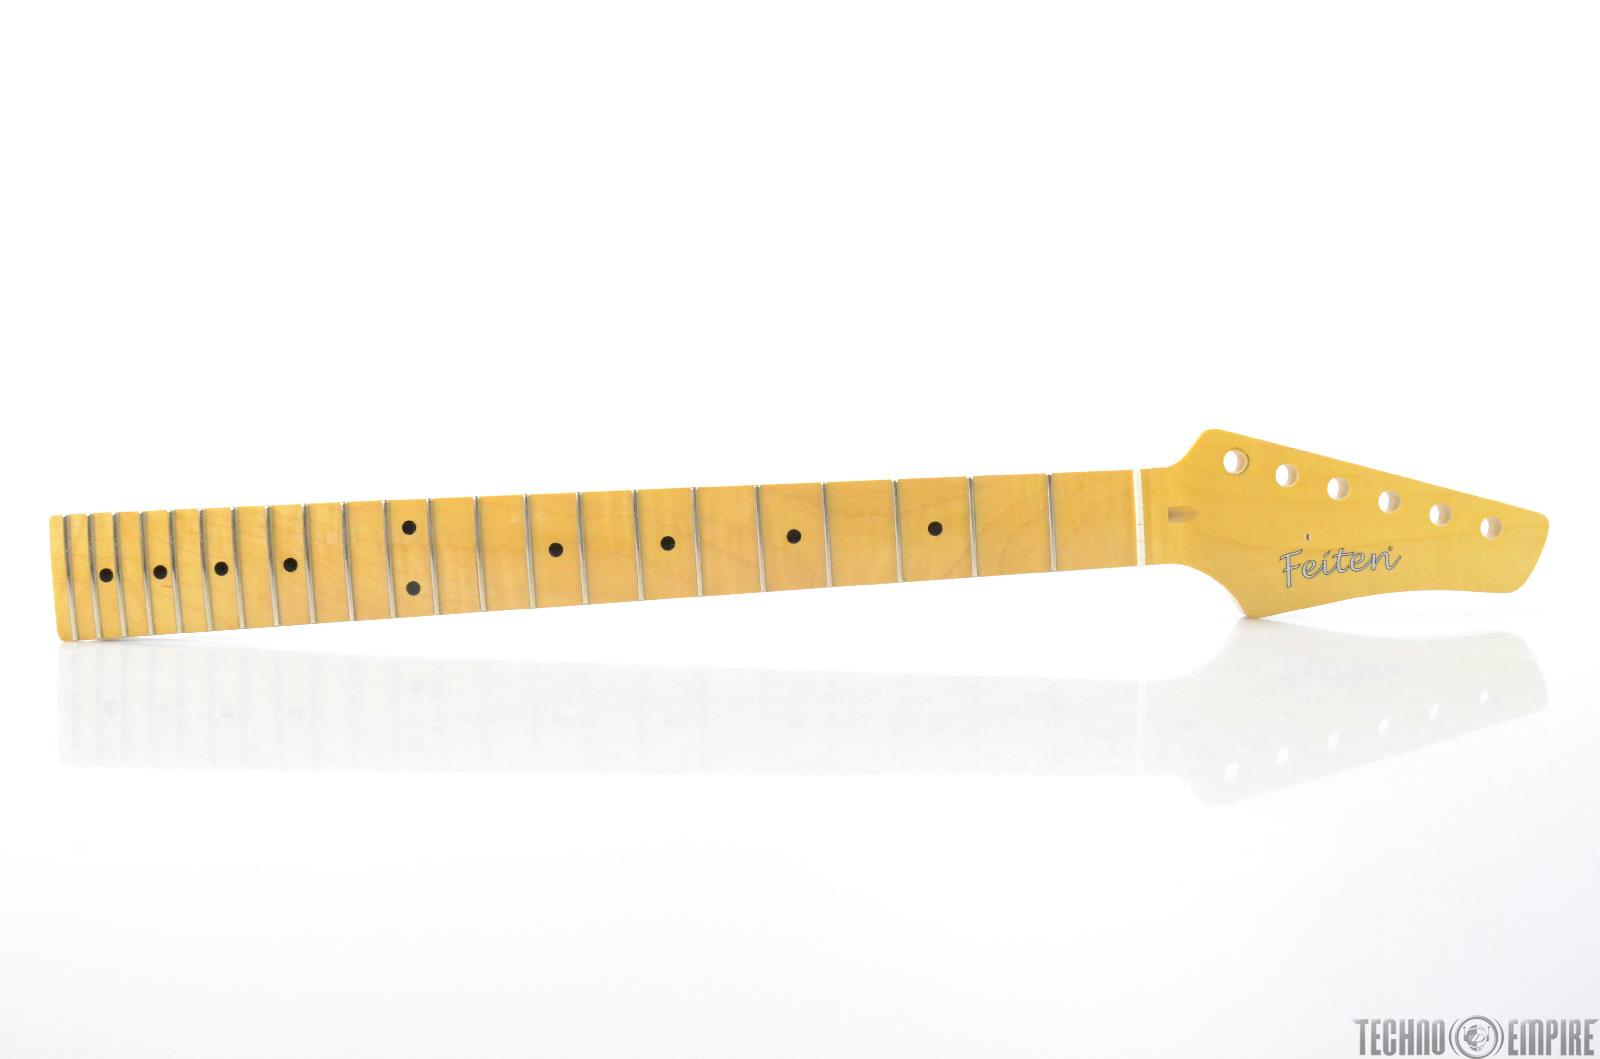 Buzz Feiten Maple Electric Guitar Neck Birdseye Maple Nashville Fat #28569